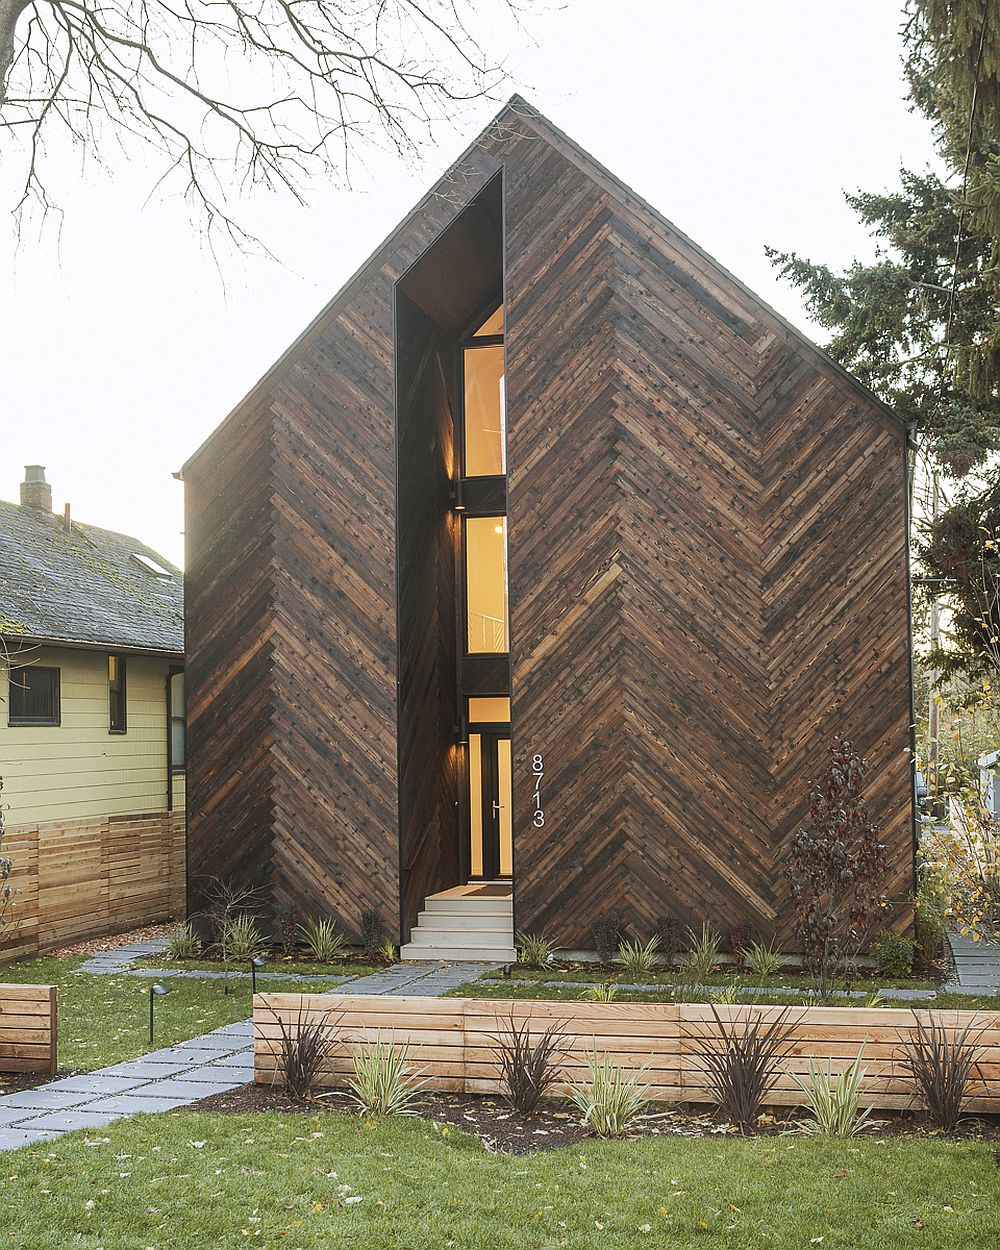 Energy efficient passive home in Seattle Energy Efficient Design at its Inspired Best: Passive House for Greener Lives!